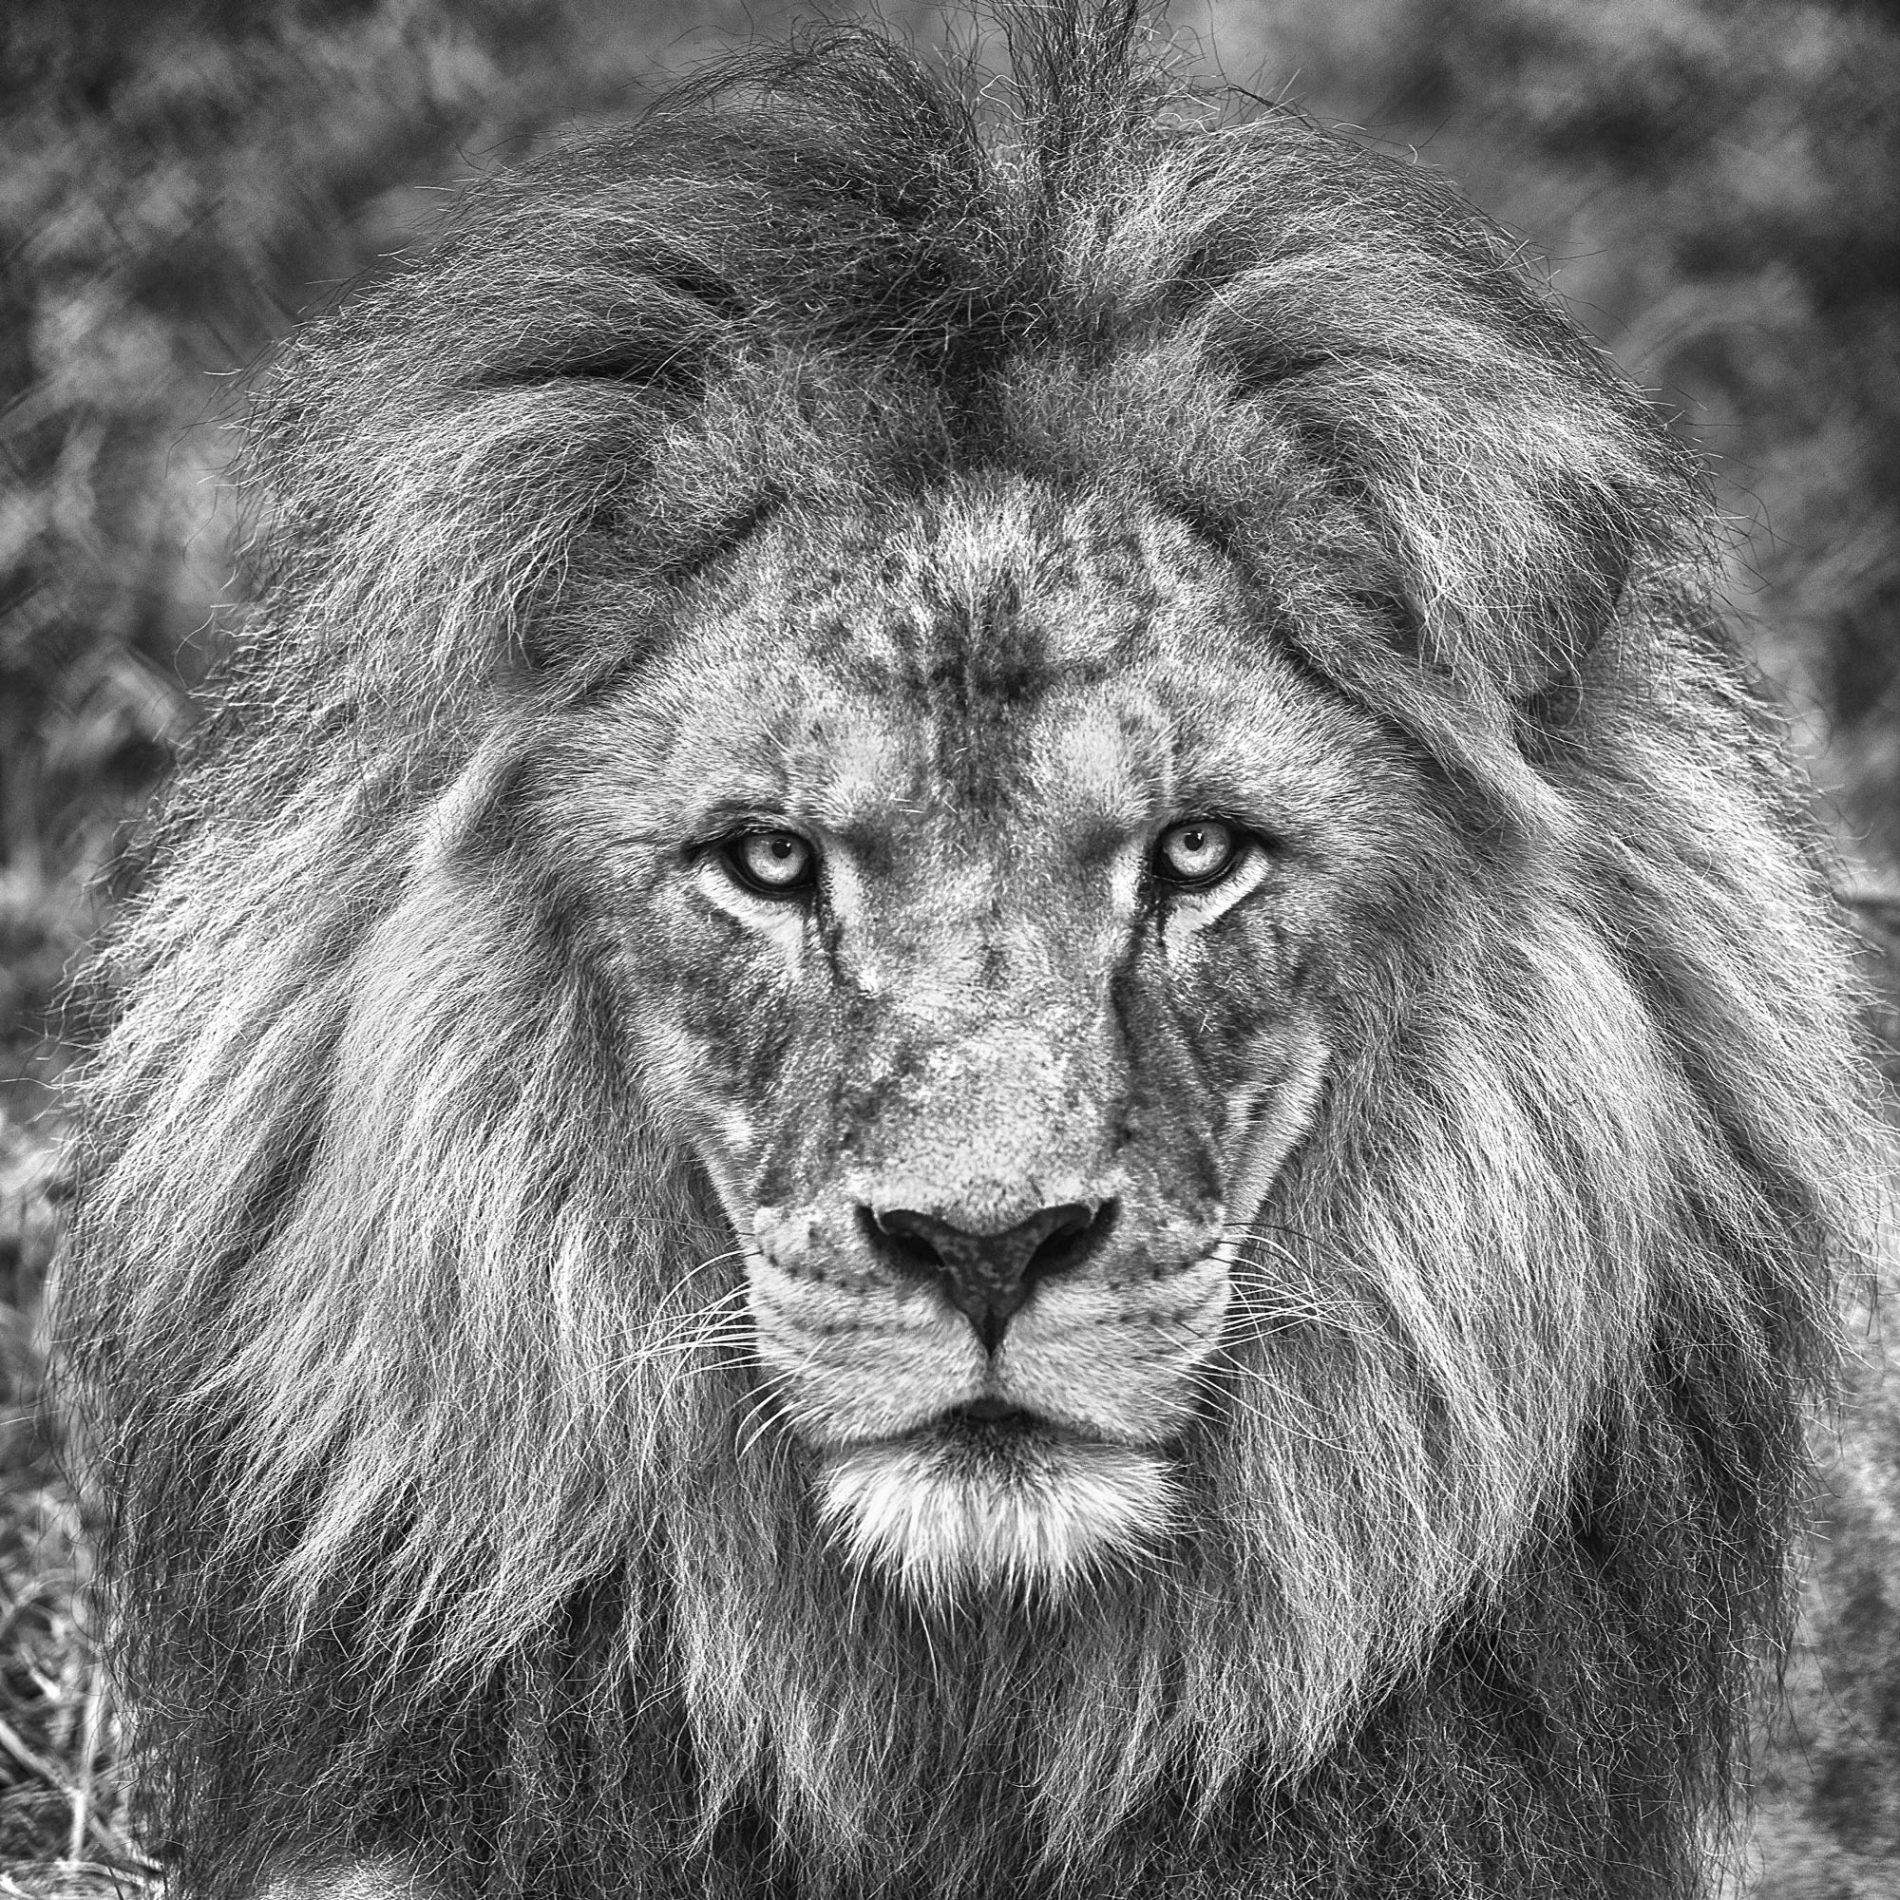 A Male lion staring direct into camera in black and white